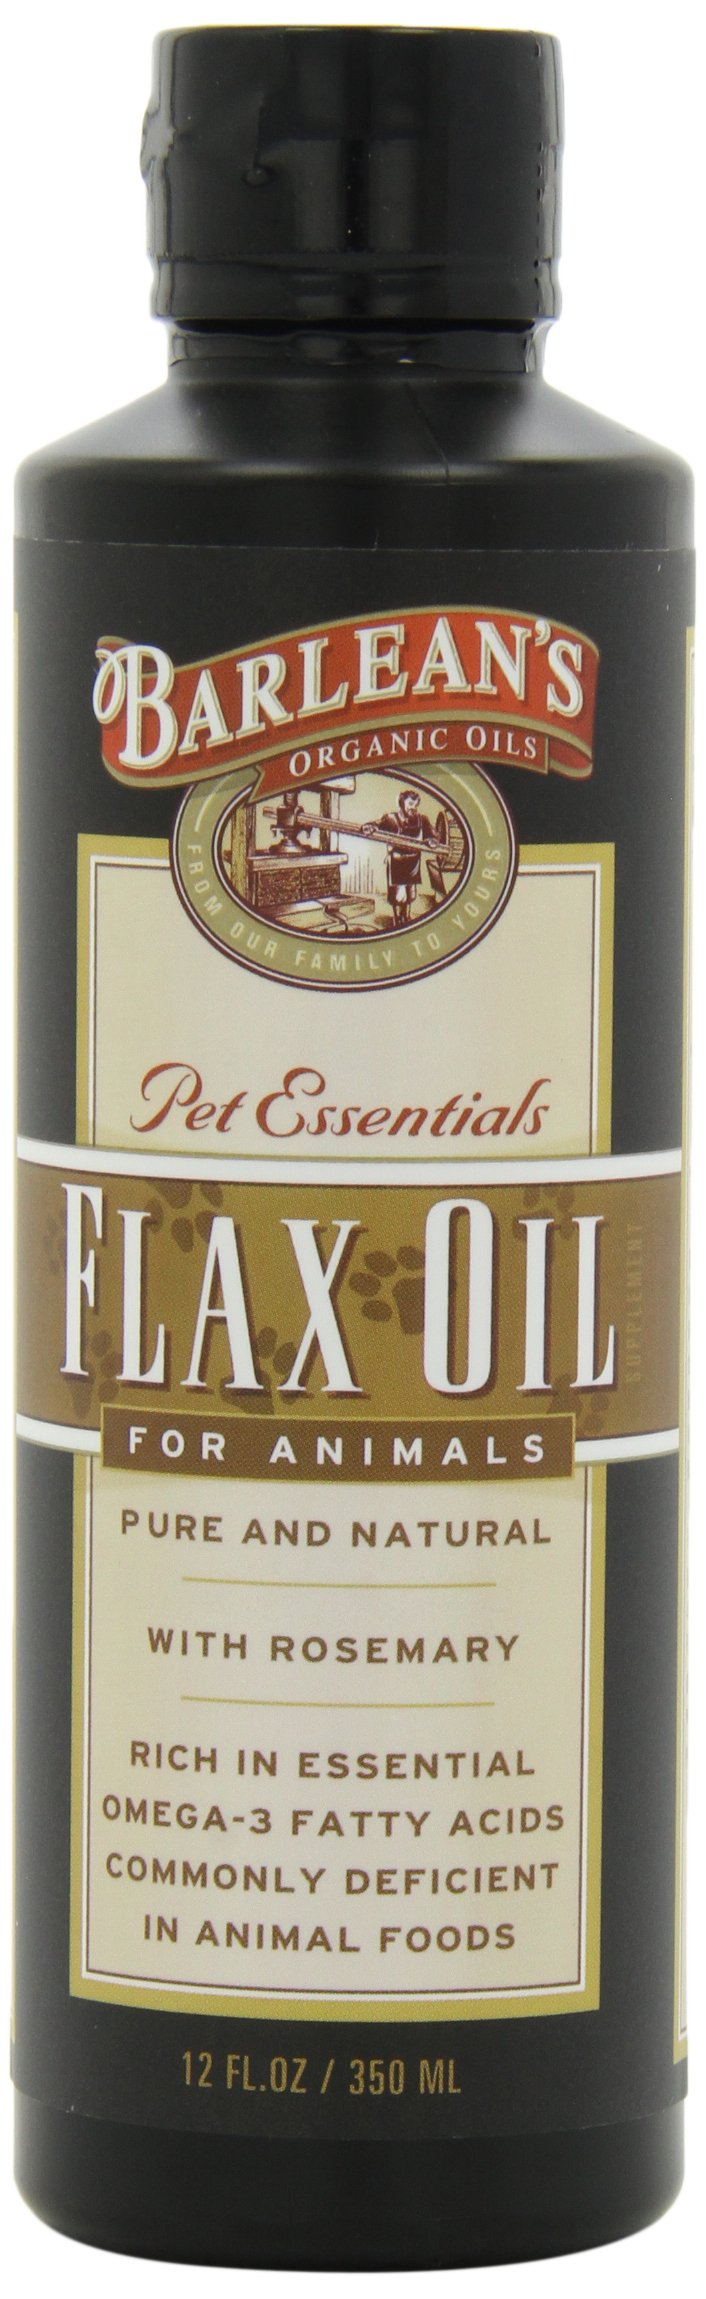 Barlean's Flax Oil For Animals, 12-Ounce Bottles (Pack of 2)